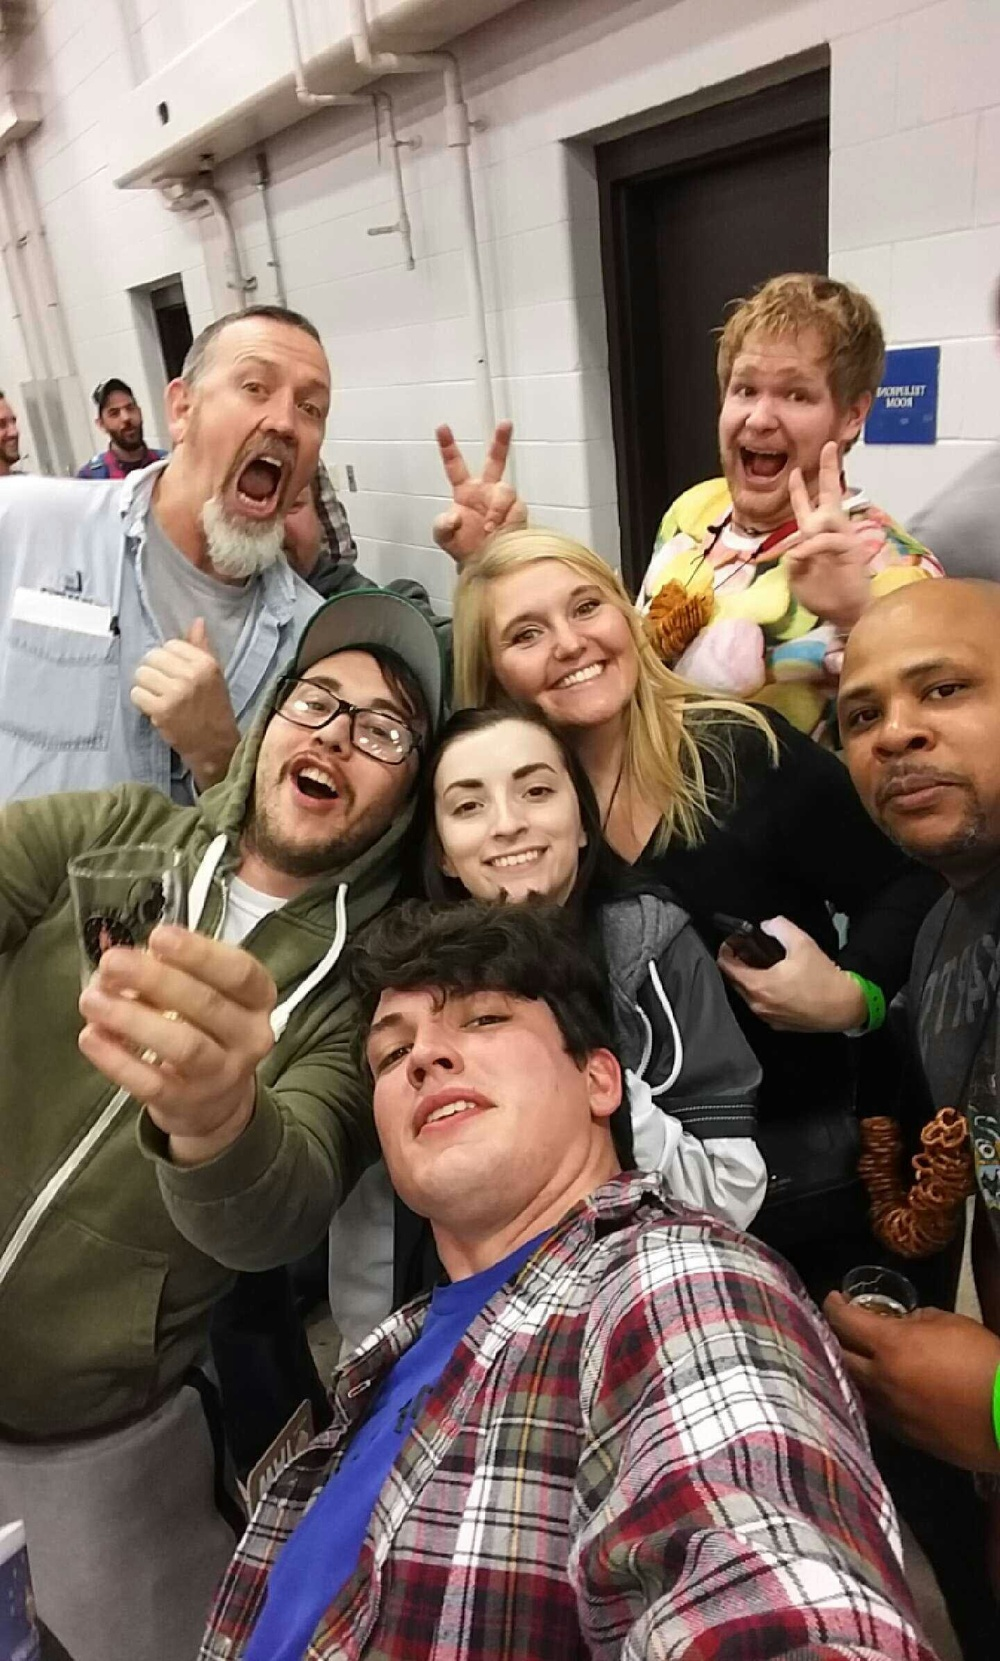 Keegan Rammel with old friends and some strangers at Winterfest